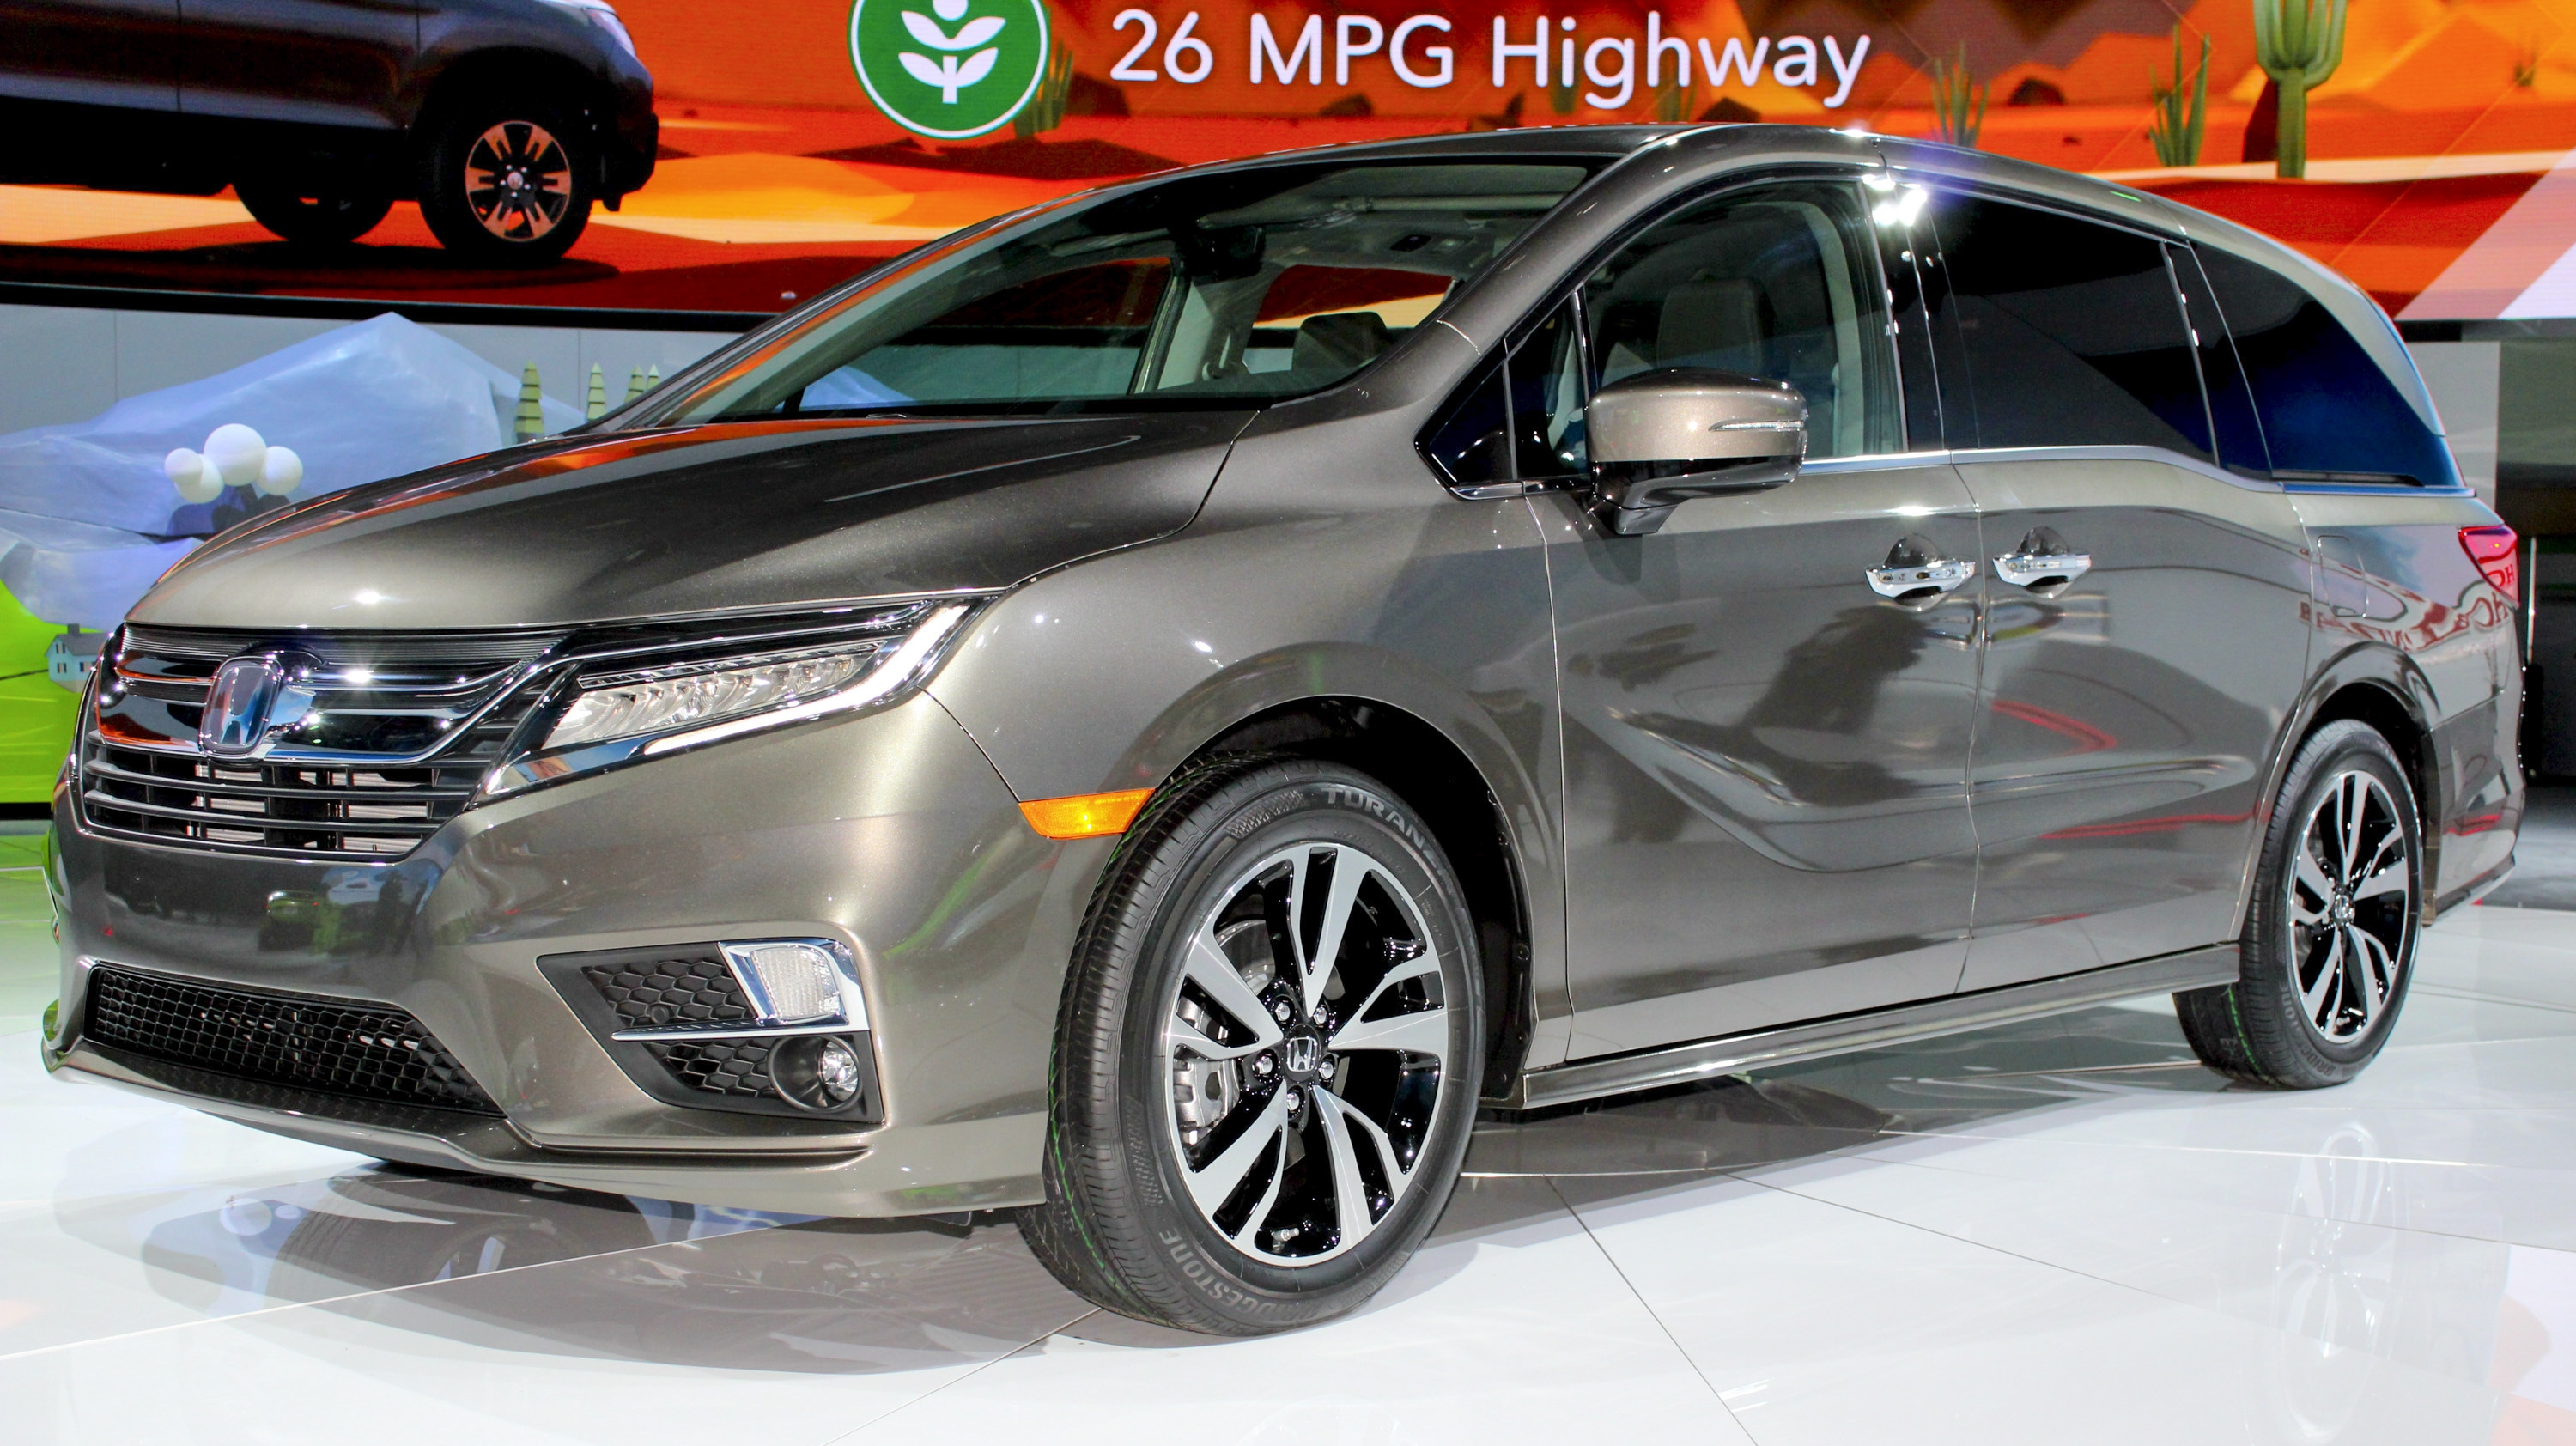 The new honda odyssey stole the show from chevy in detroit for Detroit auto show honda odyssey